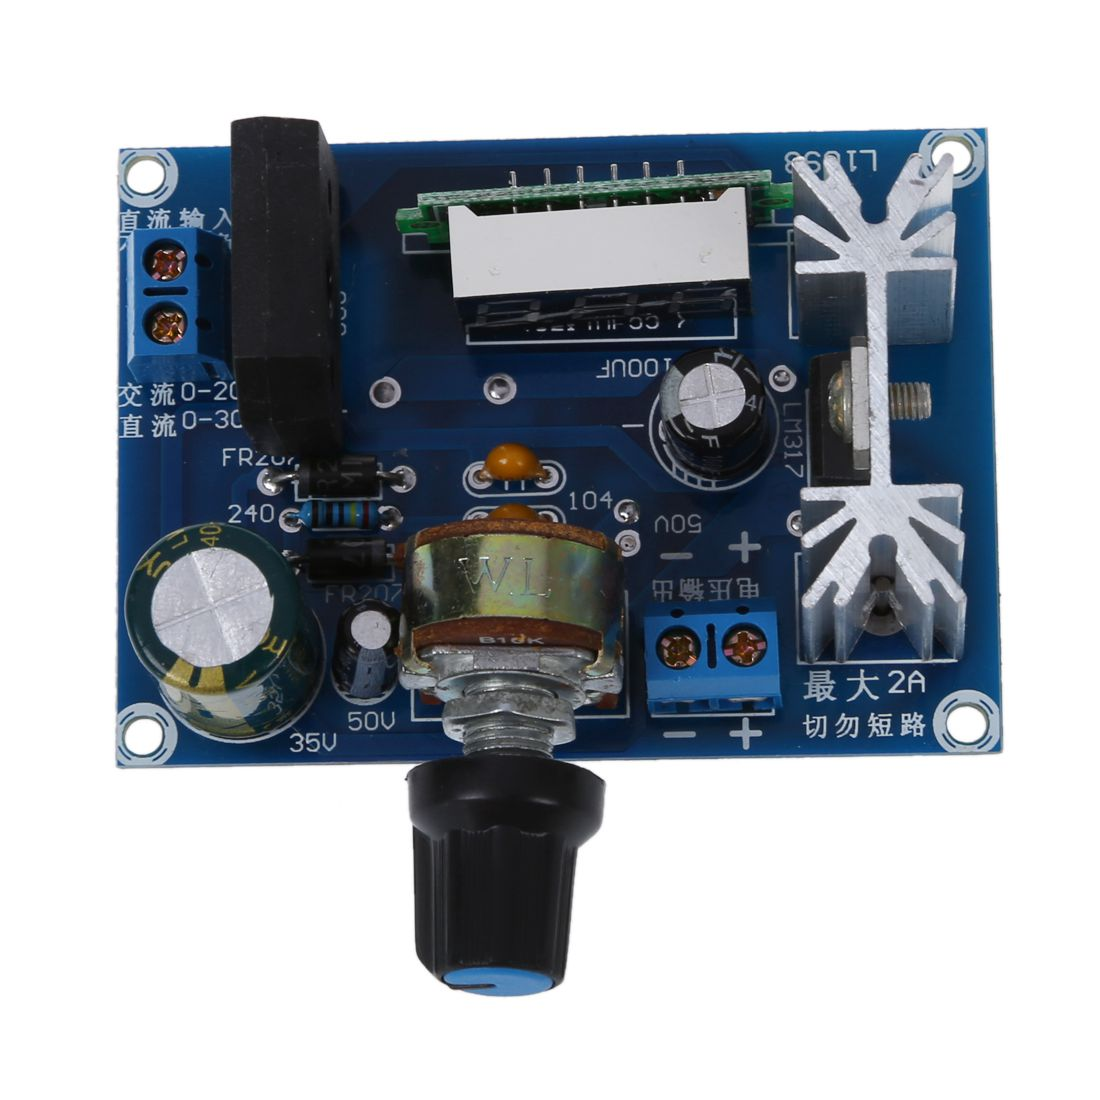 Lm317 Adjustable Voltage Regulator Step Down Power Supply Module Led Understanding This Driver Circuit Electrical Engineering Meter O6q4